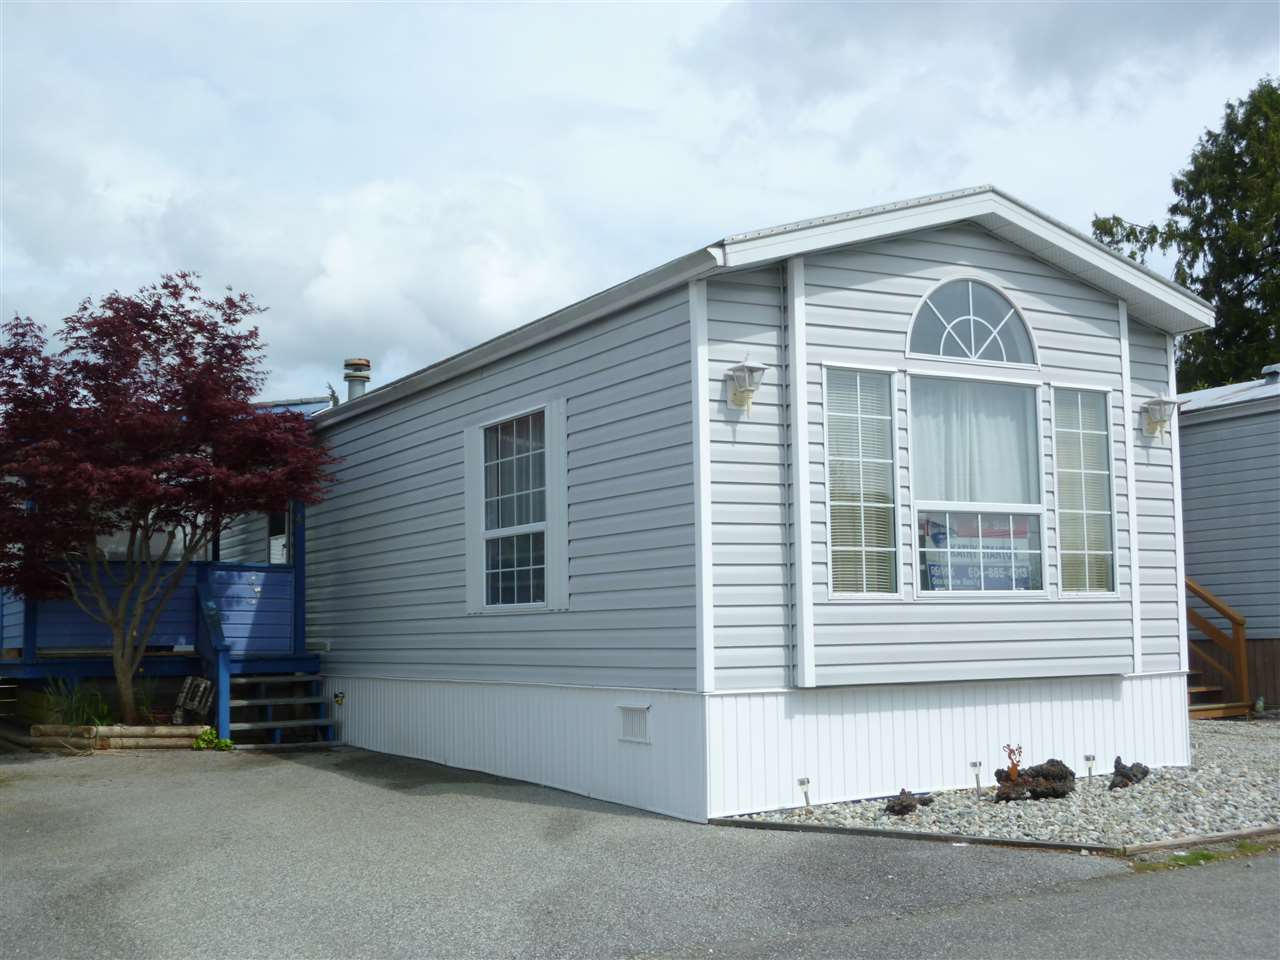 "Photo 1: Photos: 14 5575 MASON Road in Sechelt: Sechelt District Manufactured Home for sale in ""MASON RD MOBILE HOME PARK"" (Sunshine Coast)  : MLS®# R2056997"